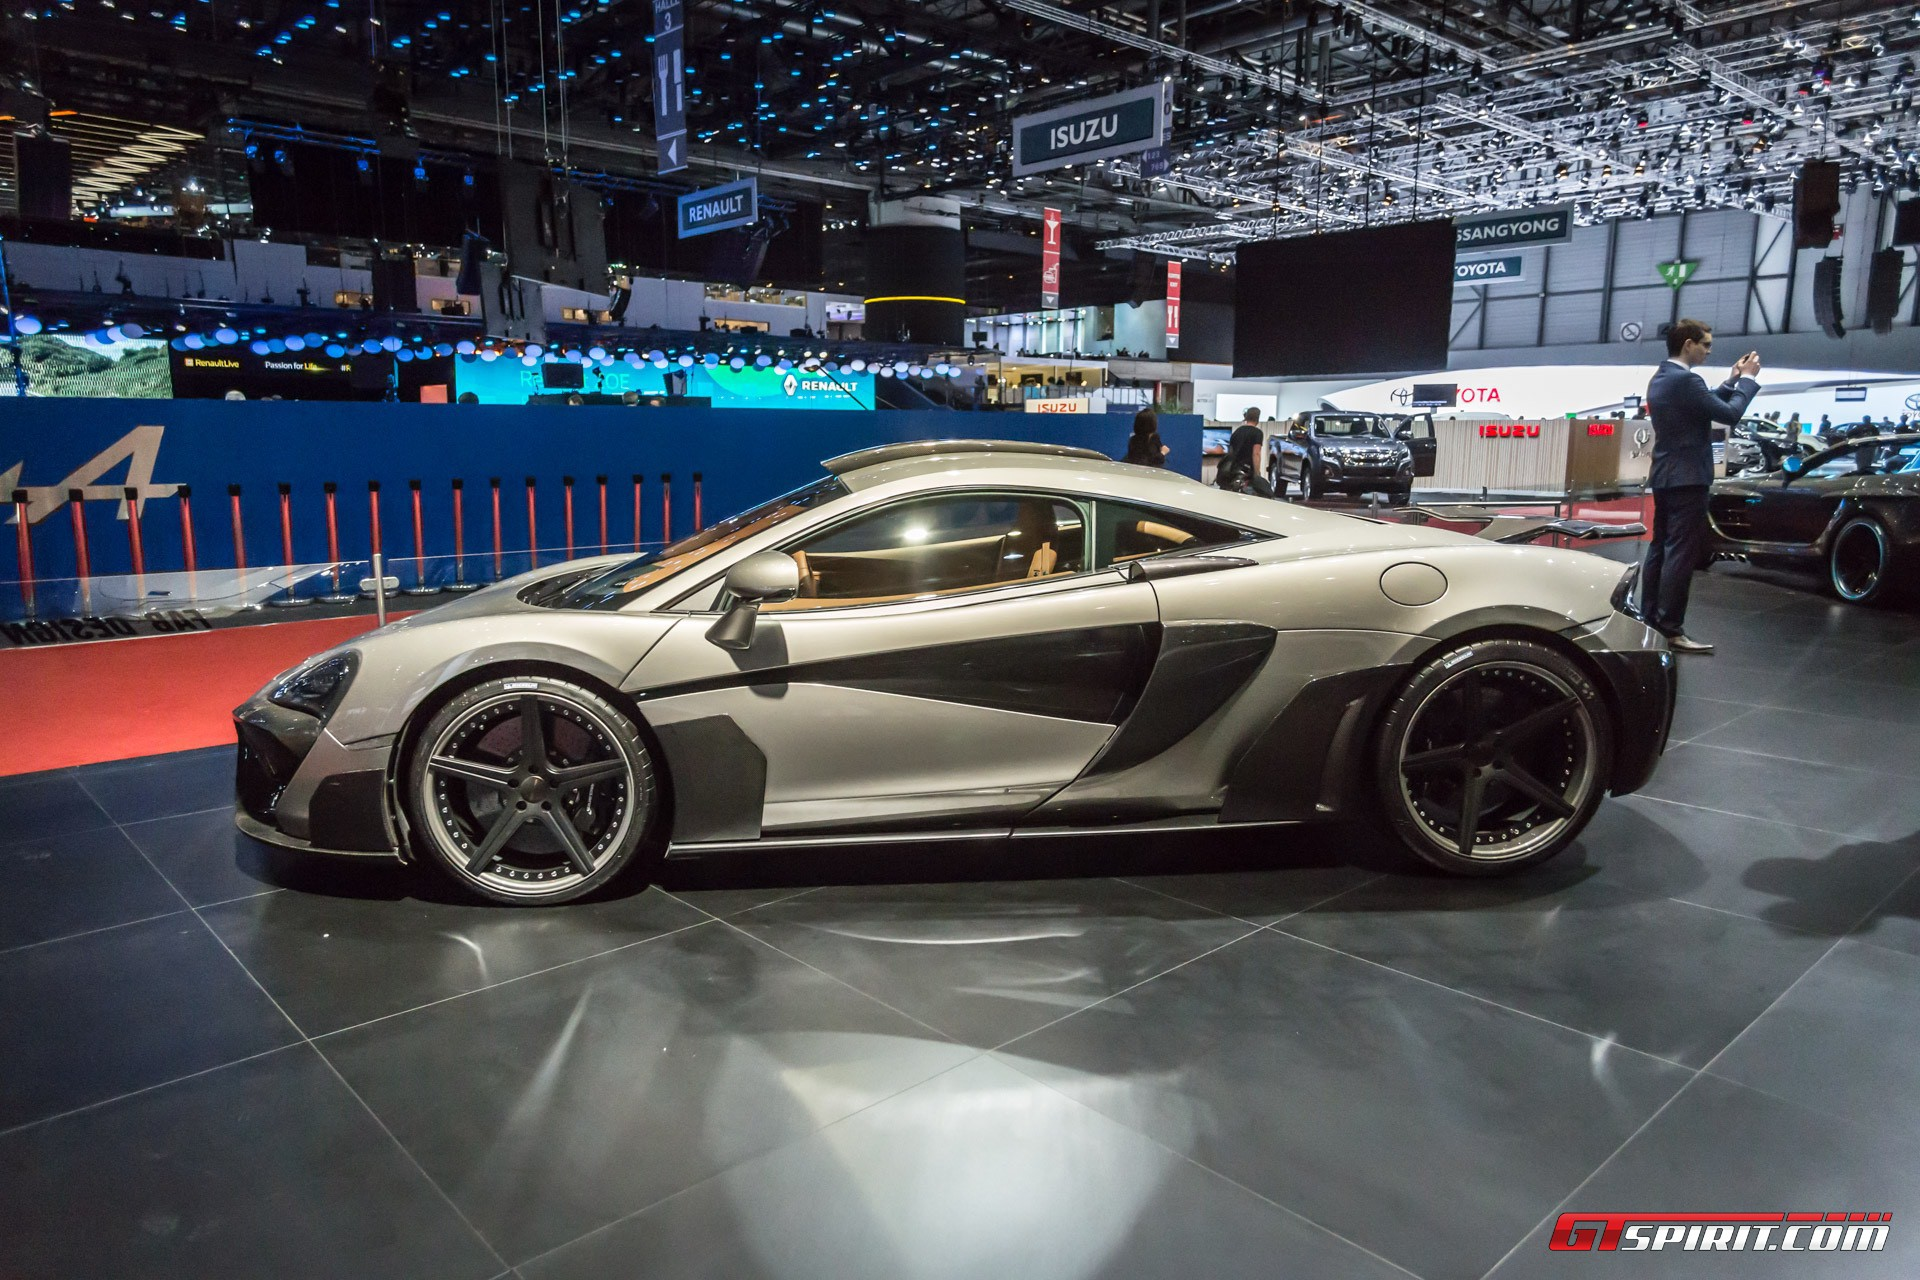 FAB Design Viyala McLaren 570S at Geneva 2017